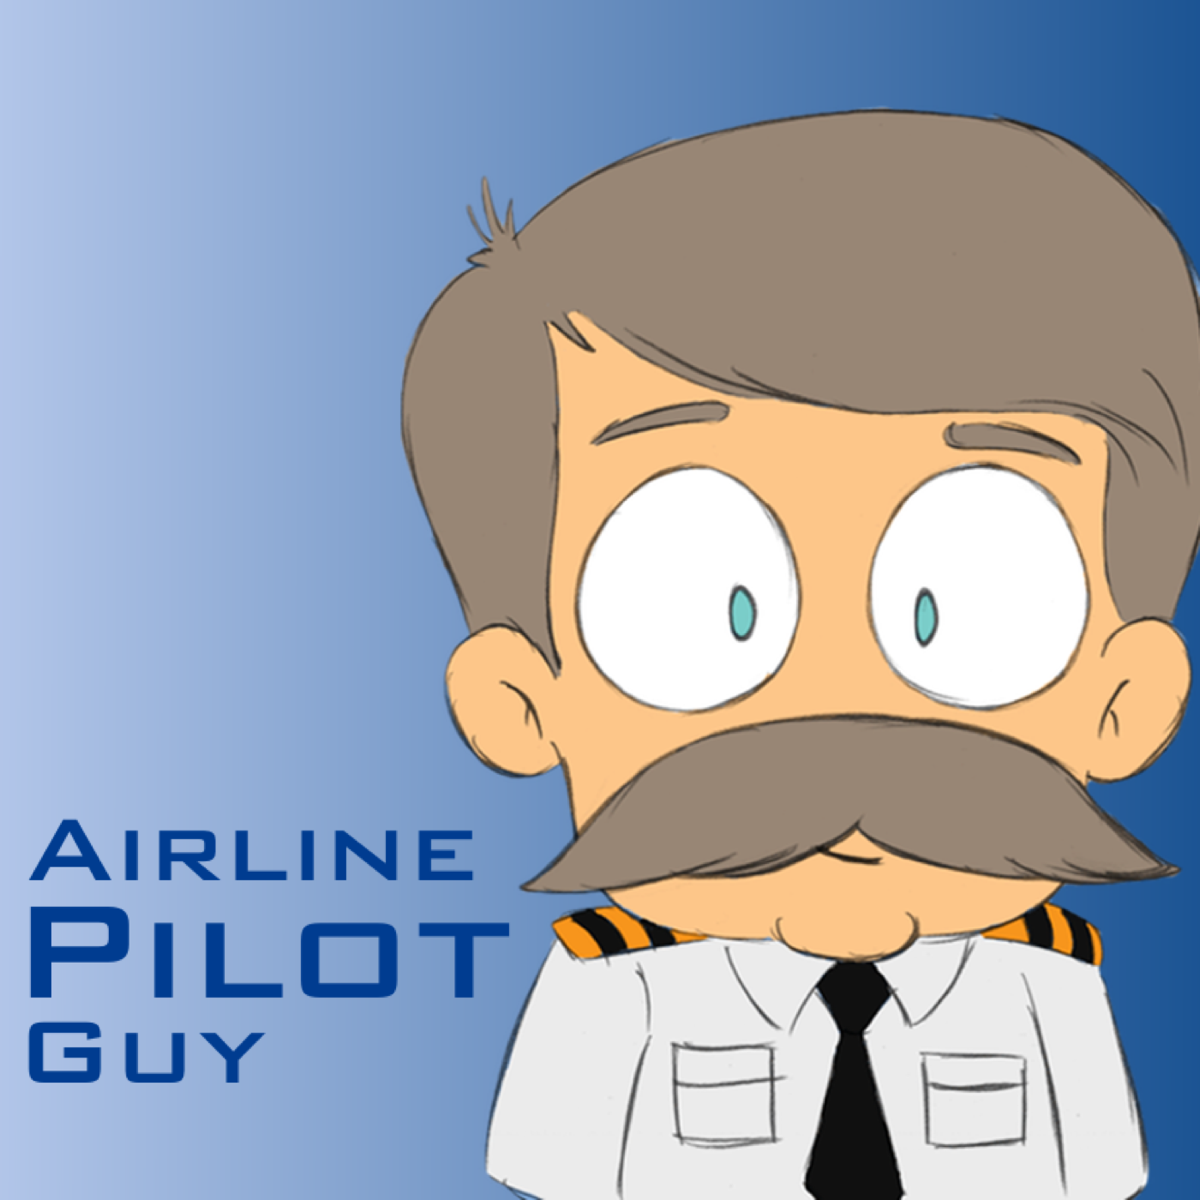 Best Episodes Of Airline Pilot Guy Aviation Podcast On Podyssey Toy Hacking Zine V1 Circuit Bending Booklet For Kids Ma Flickr Podcasts